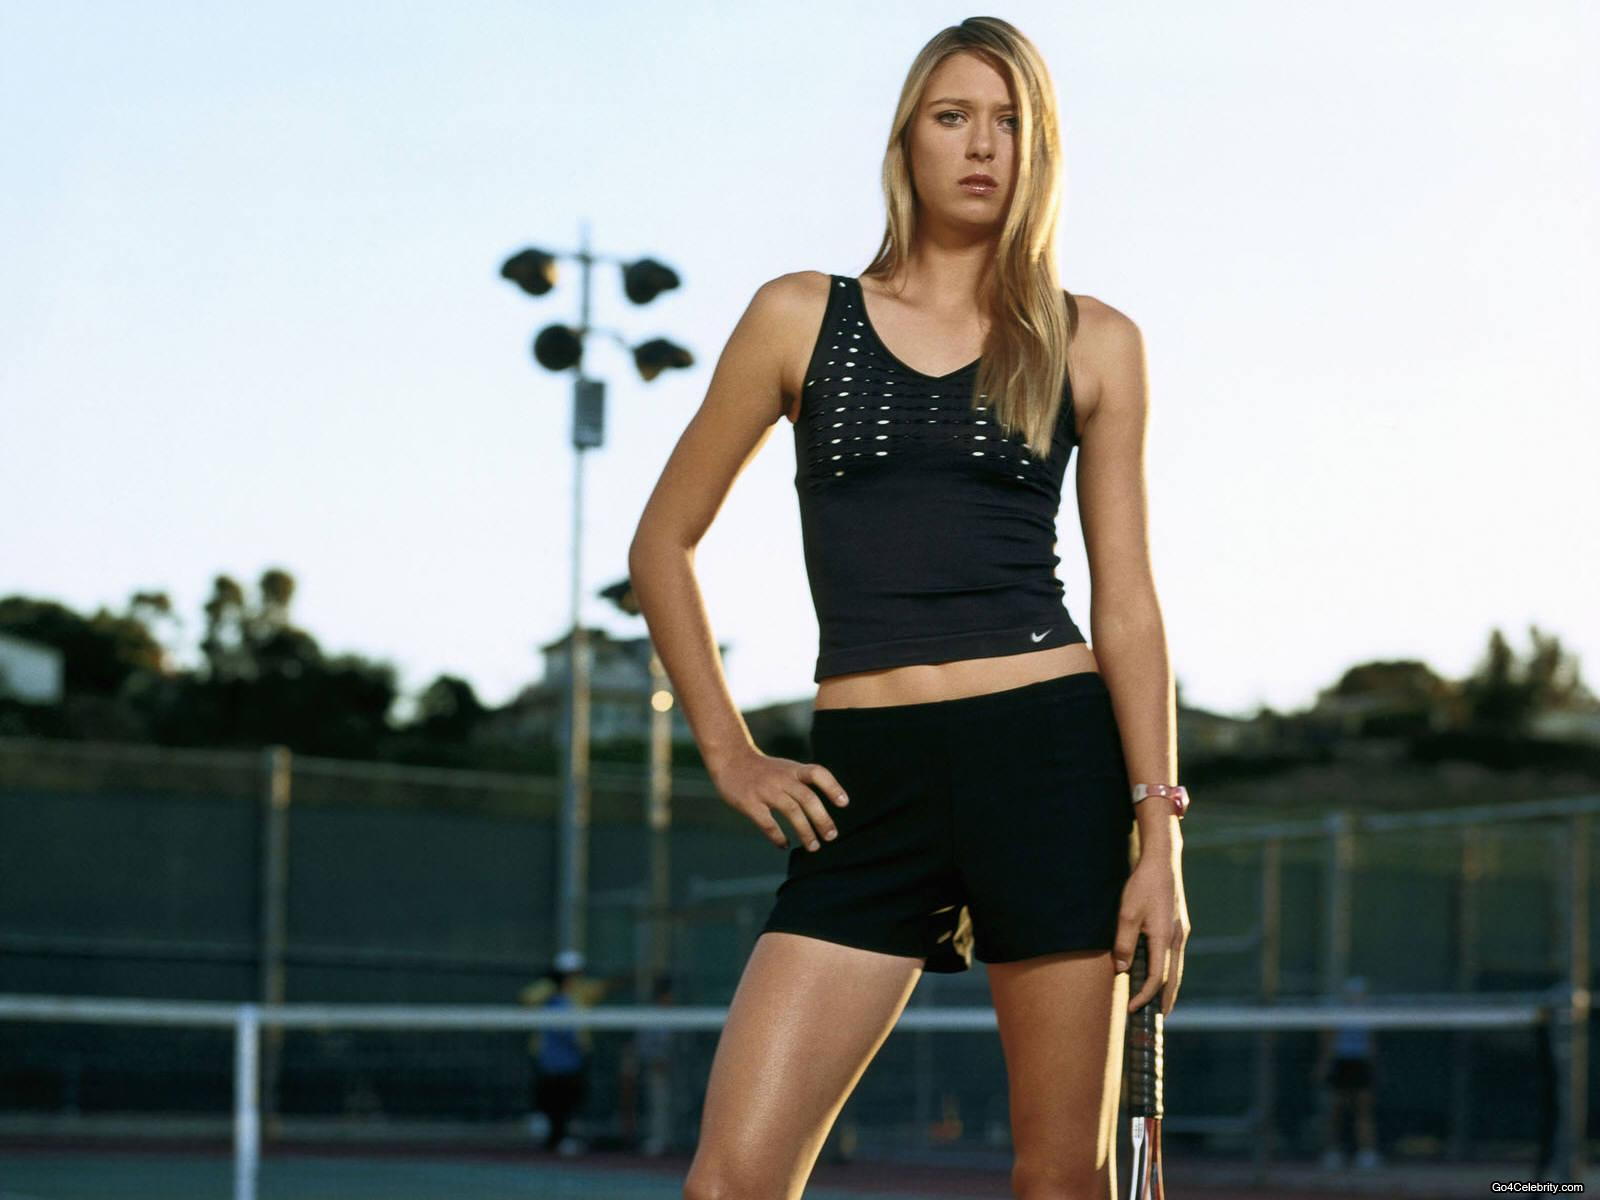 Maria Sharapova Wallpaper 19   1600 X 1200 stmednet 1600x1200